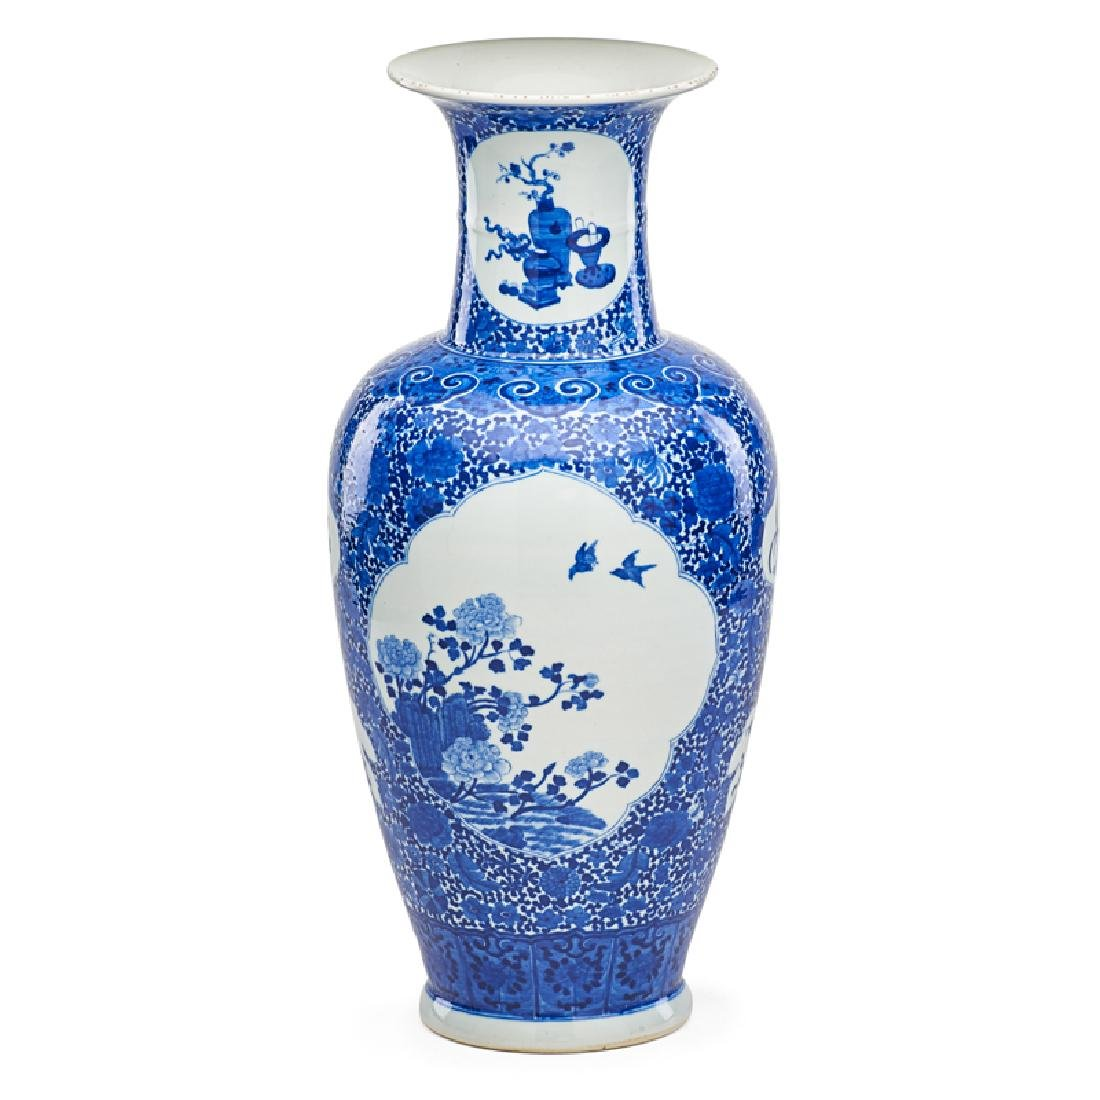 CHINESE BLUE AND WHITE EXPORT PORCELAIN VASE